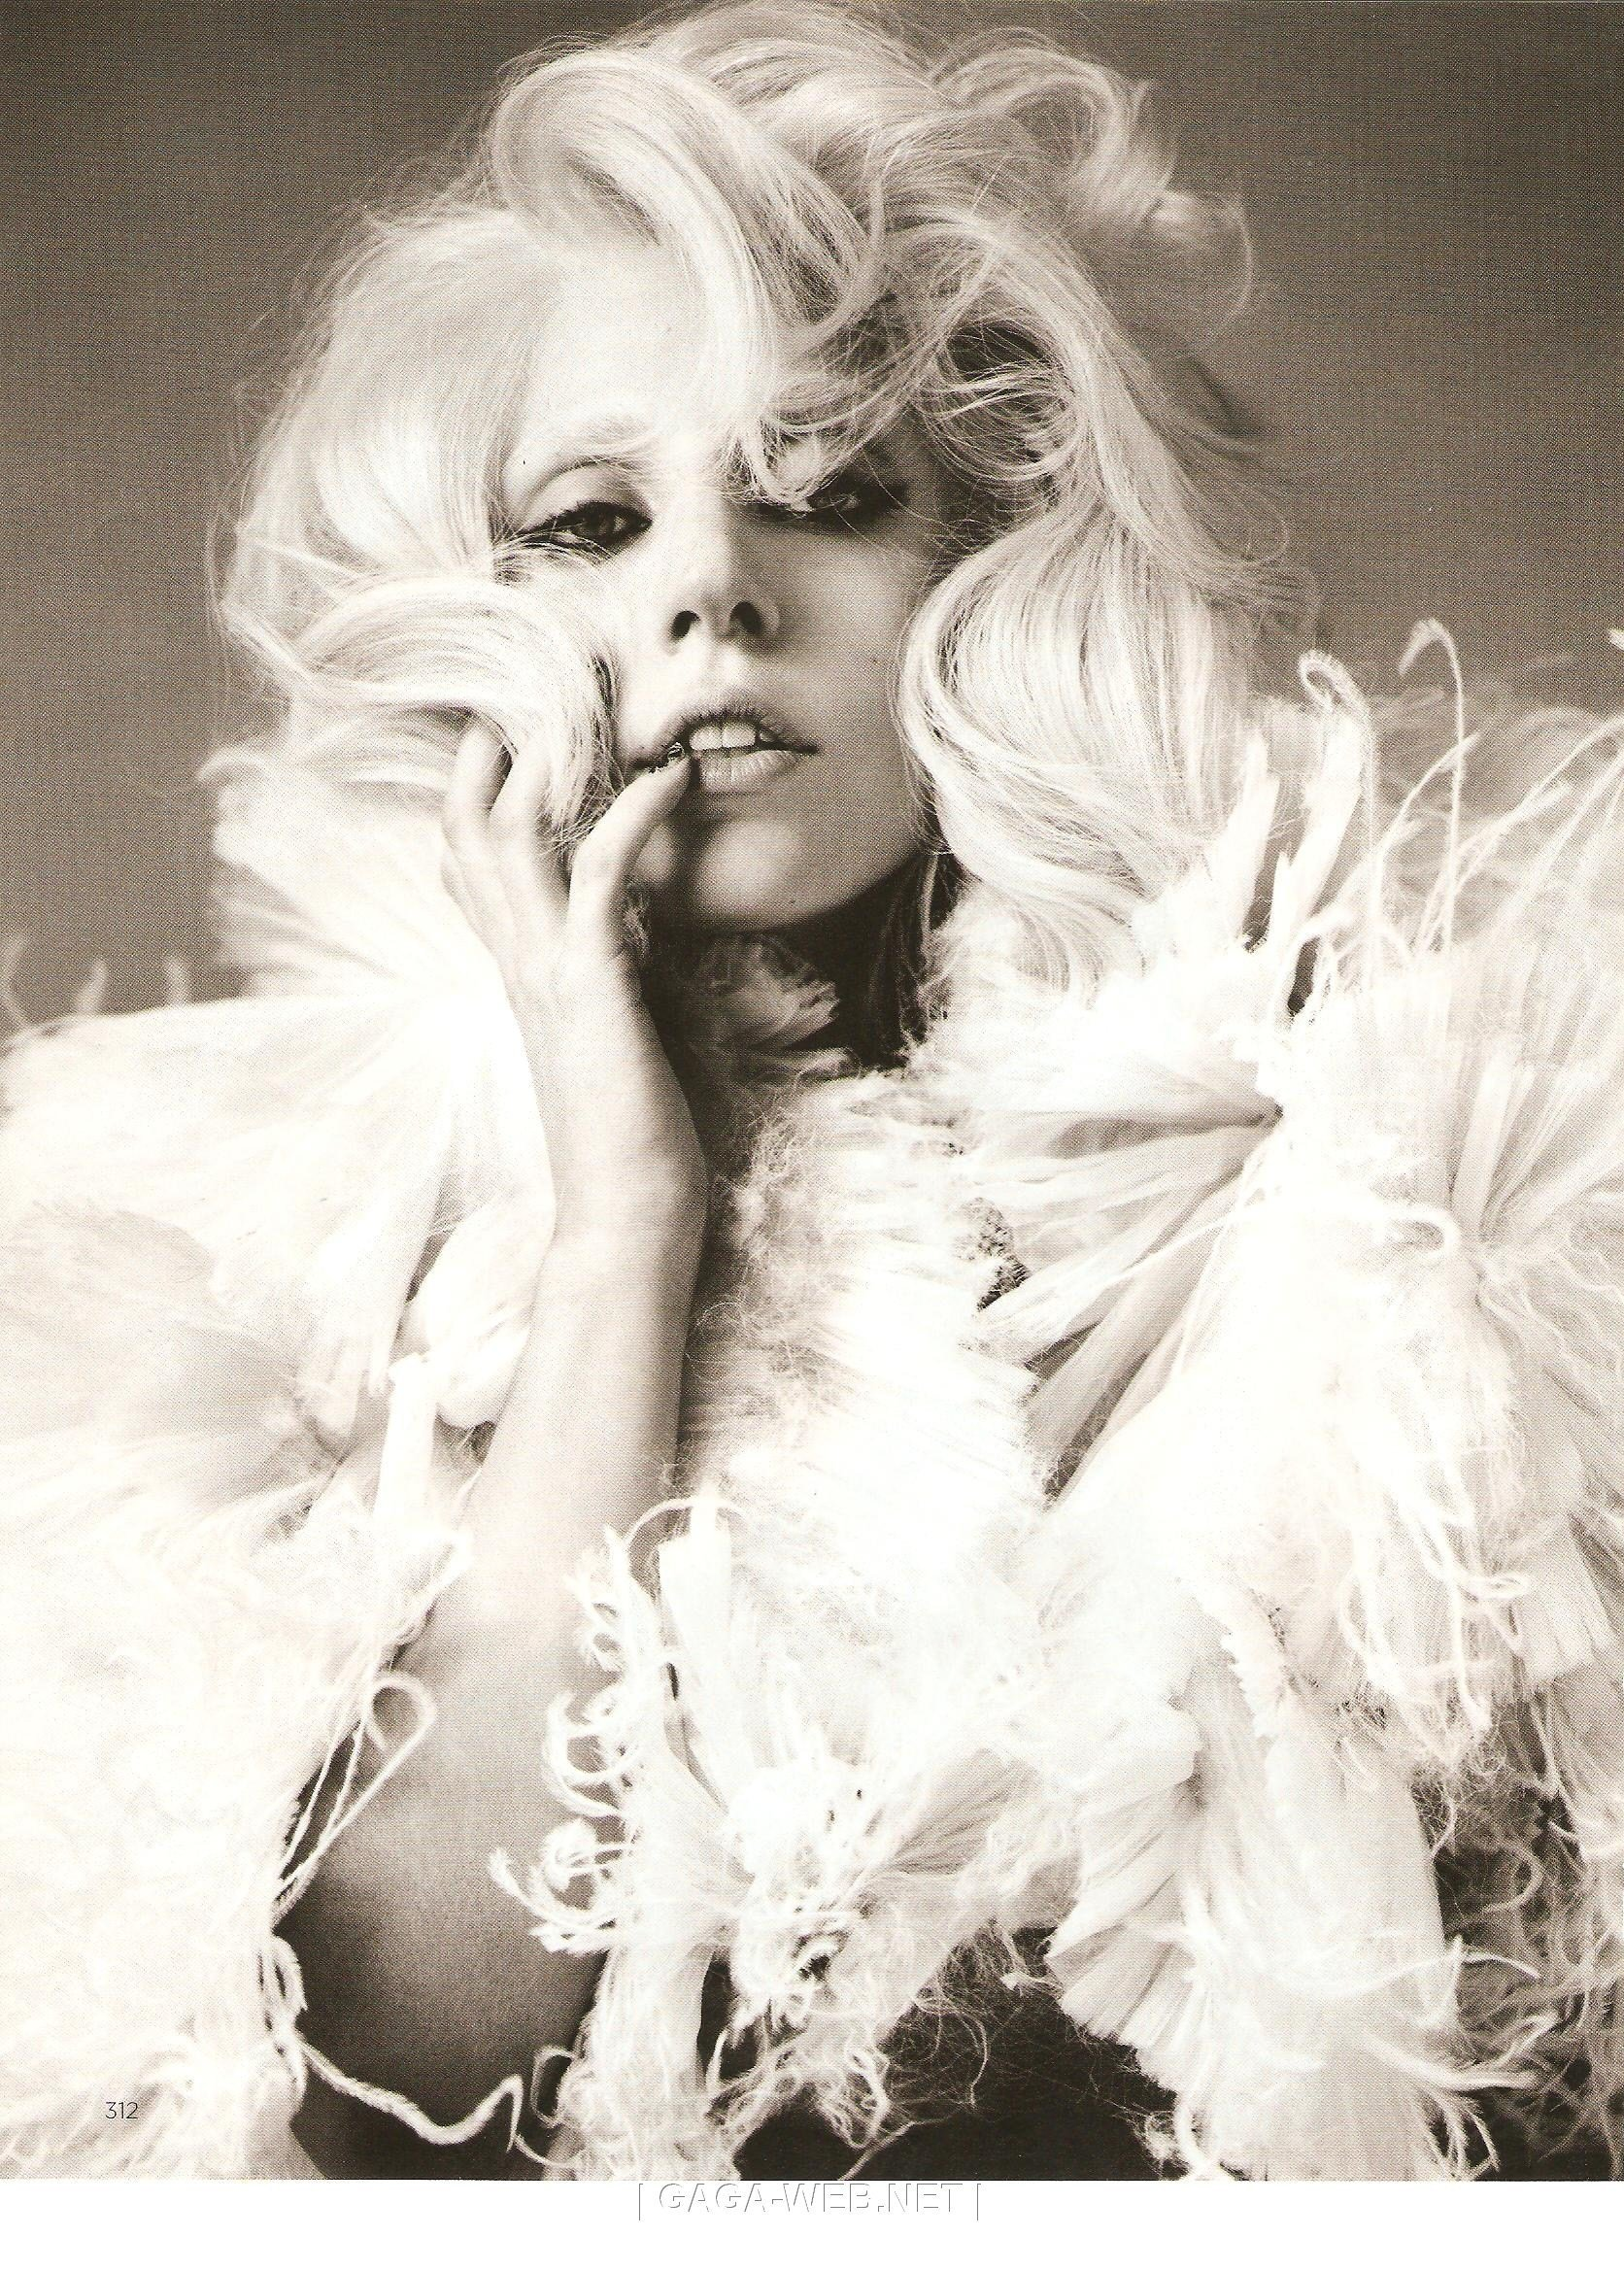 Lady Gaga - Images Colection